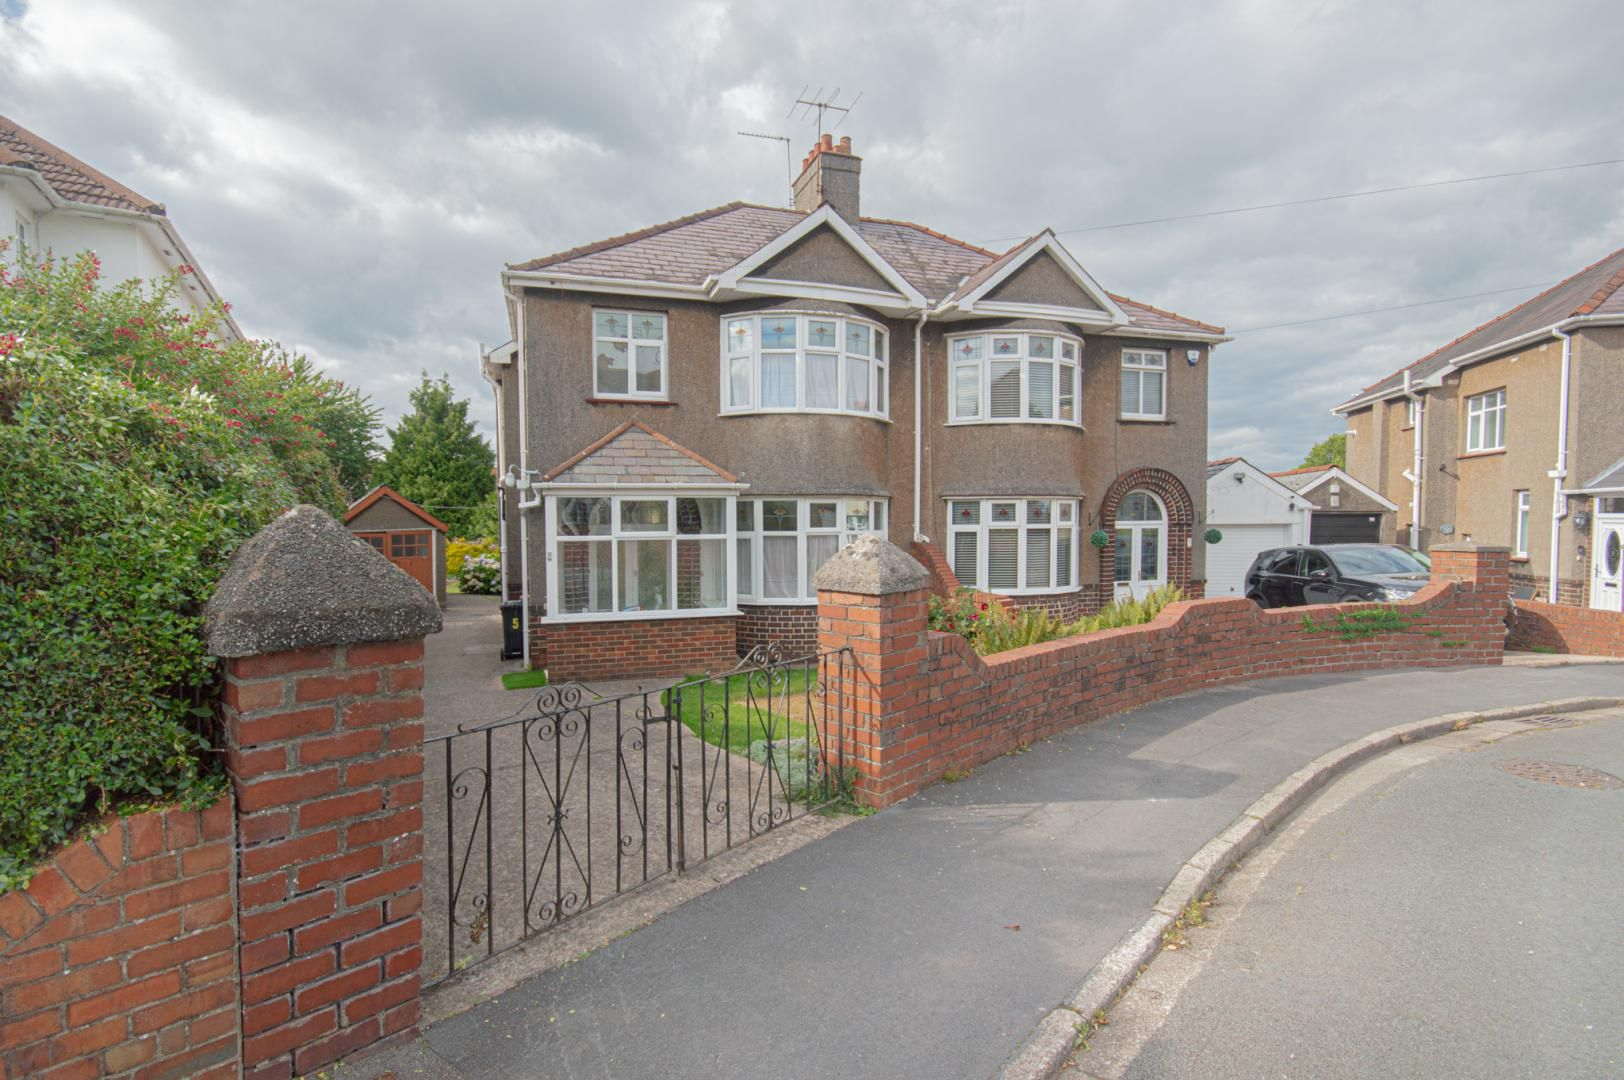 3 bed house to rent in Elaine Crescent, NP19